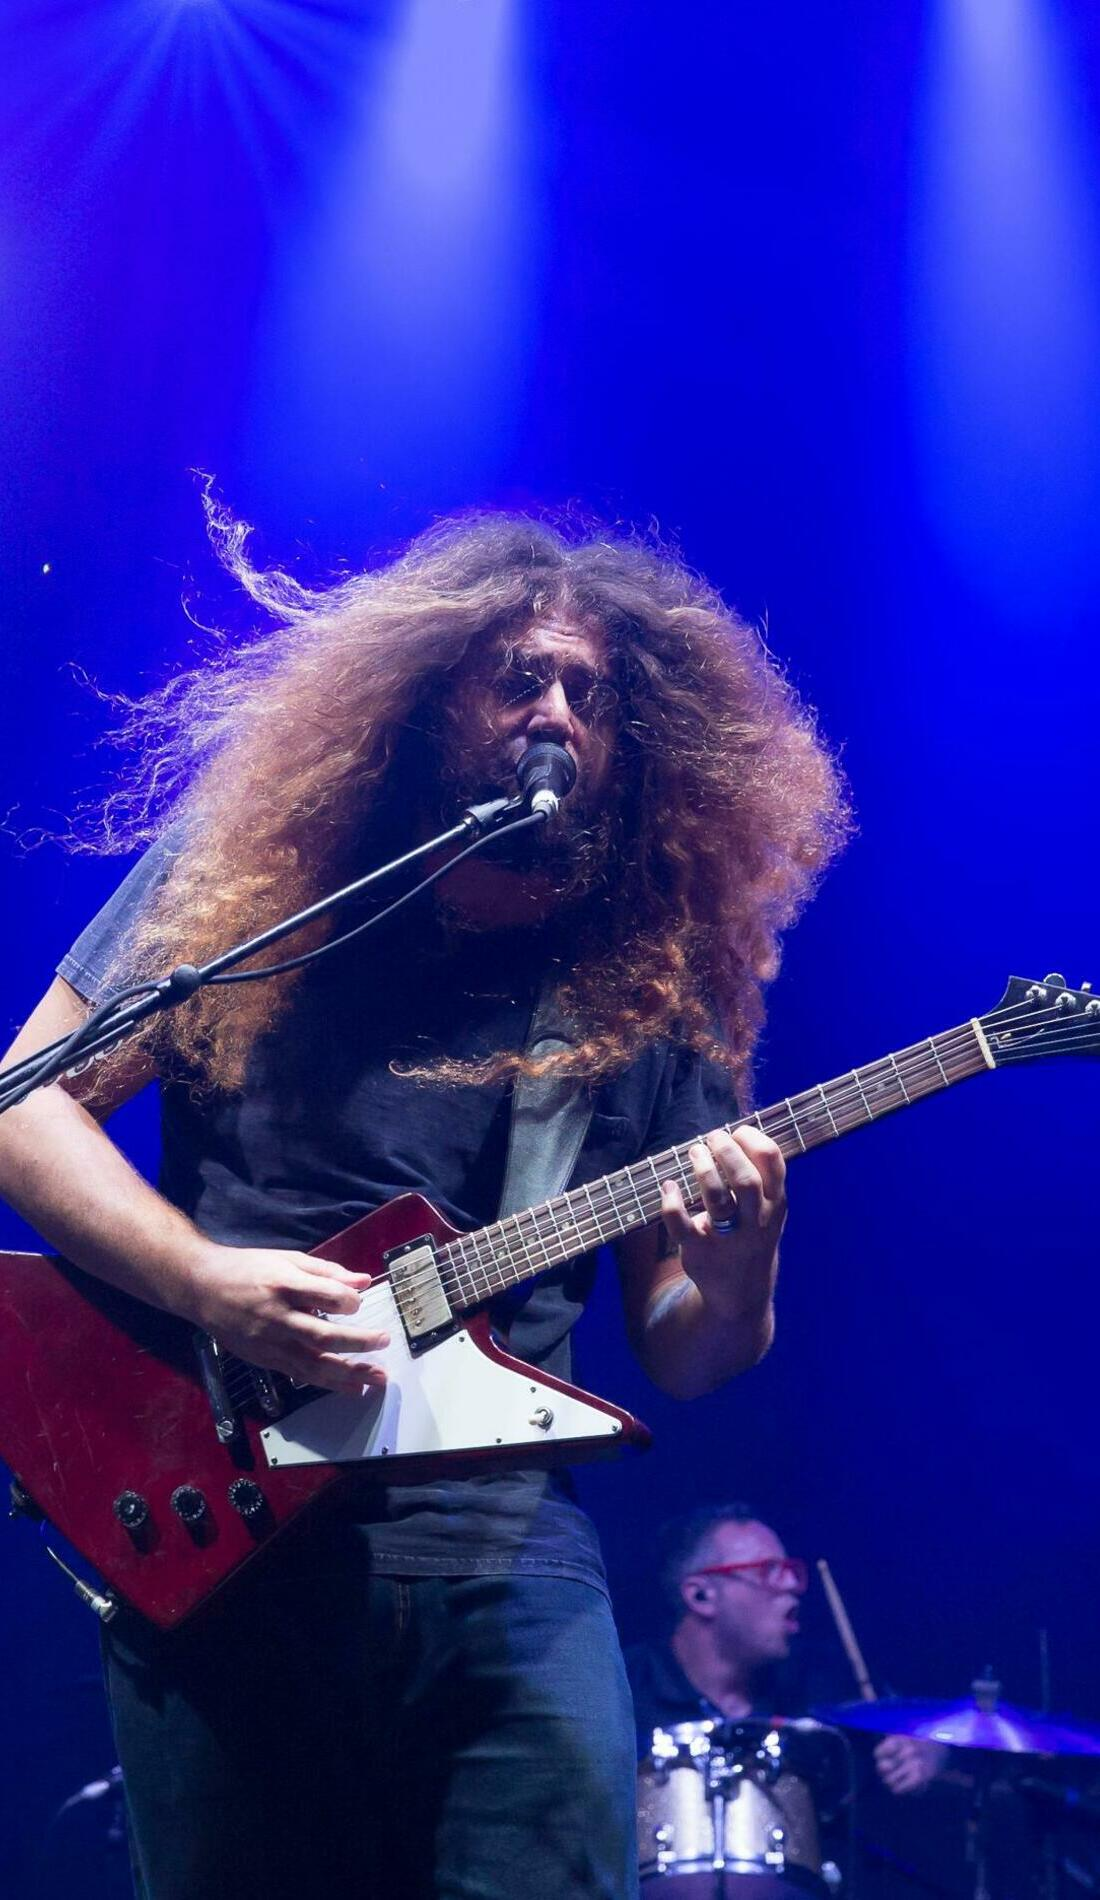 A Coheed and Cambria live event